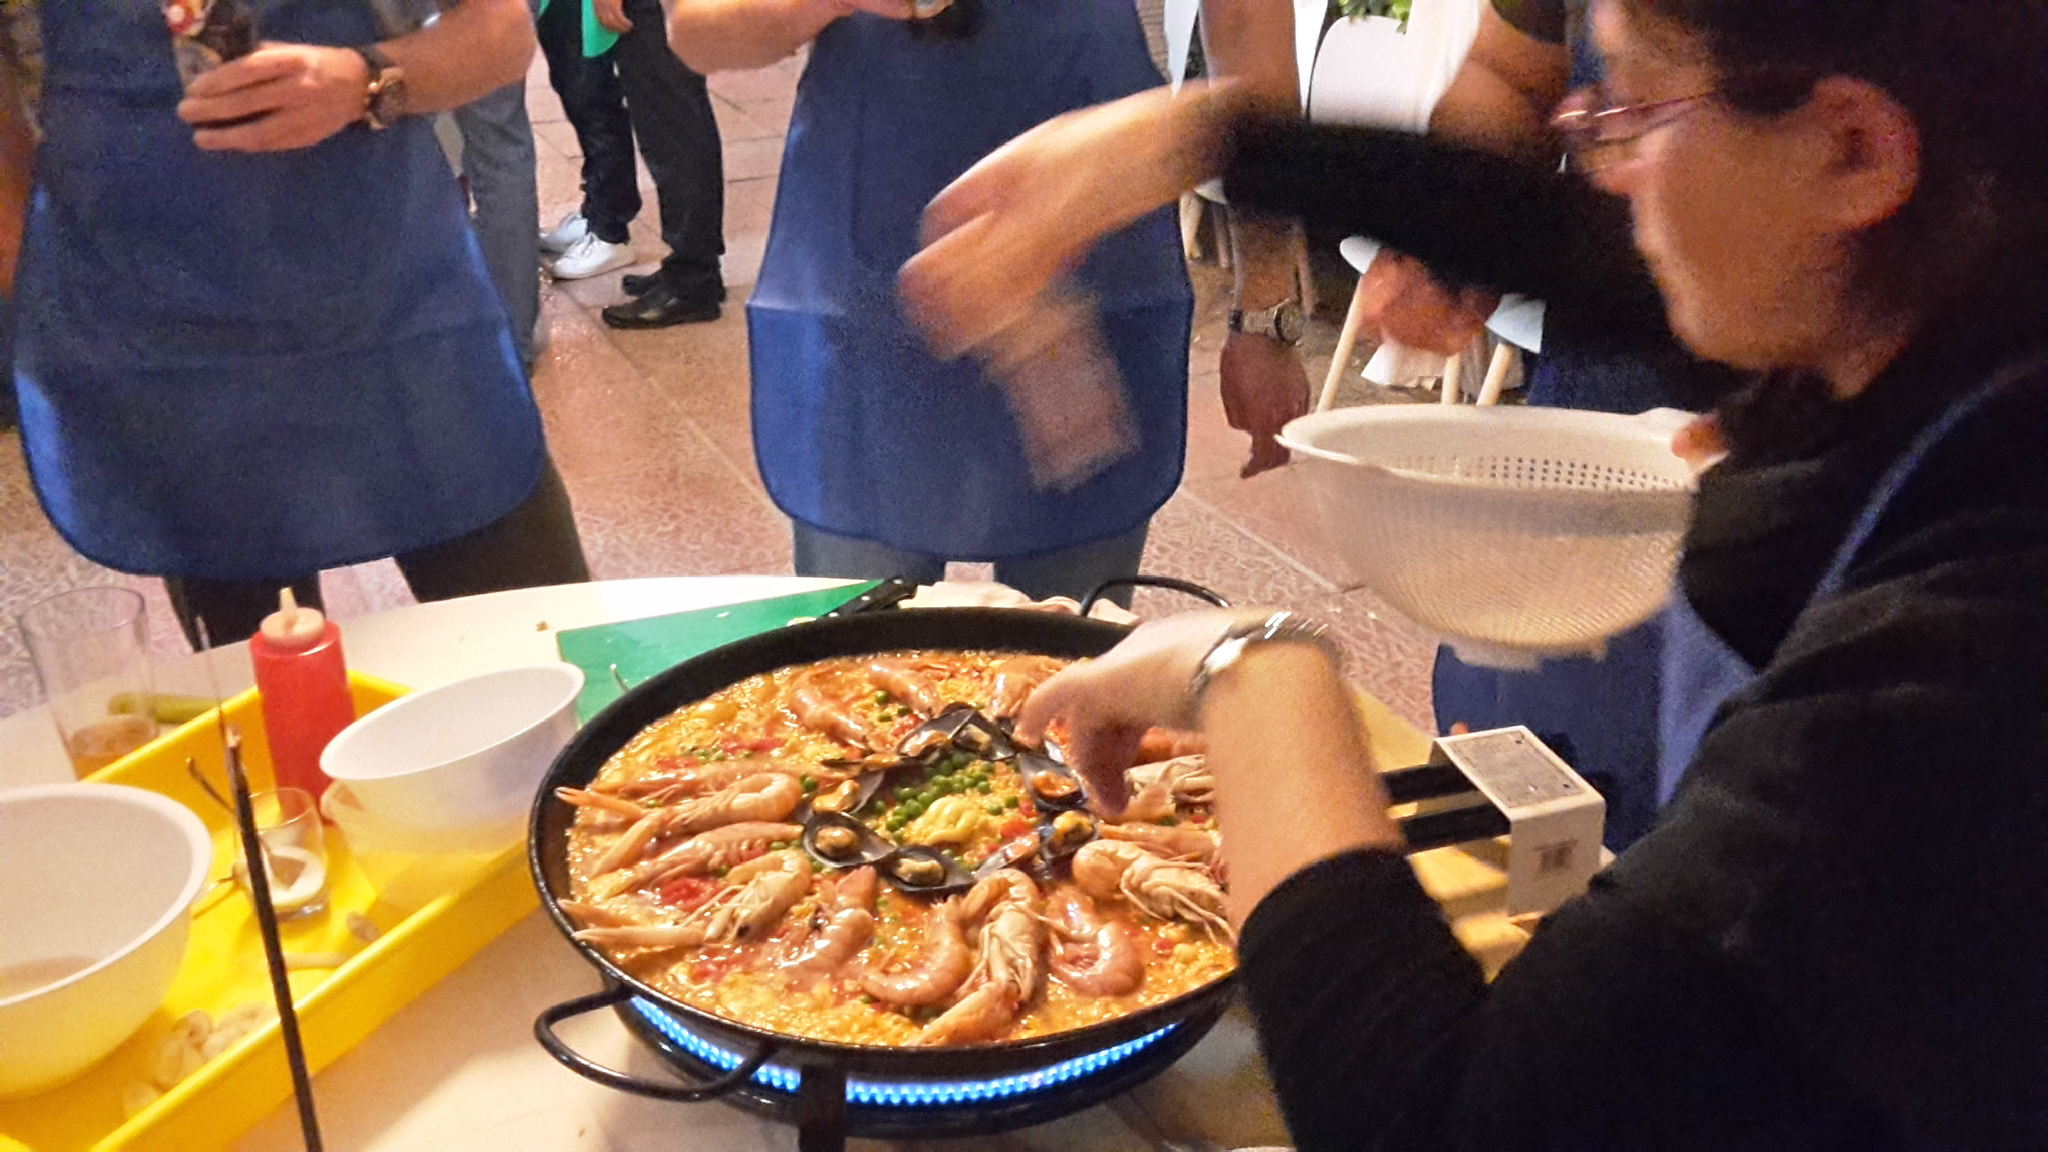 Paella cooking activity in Spain